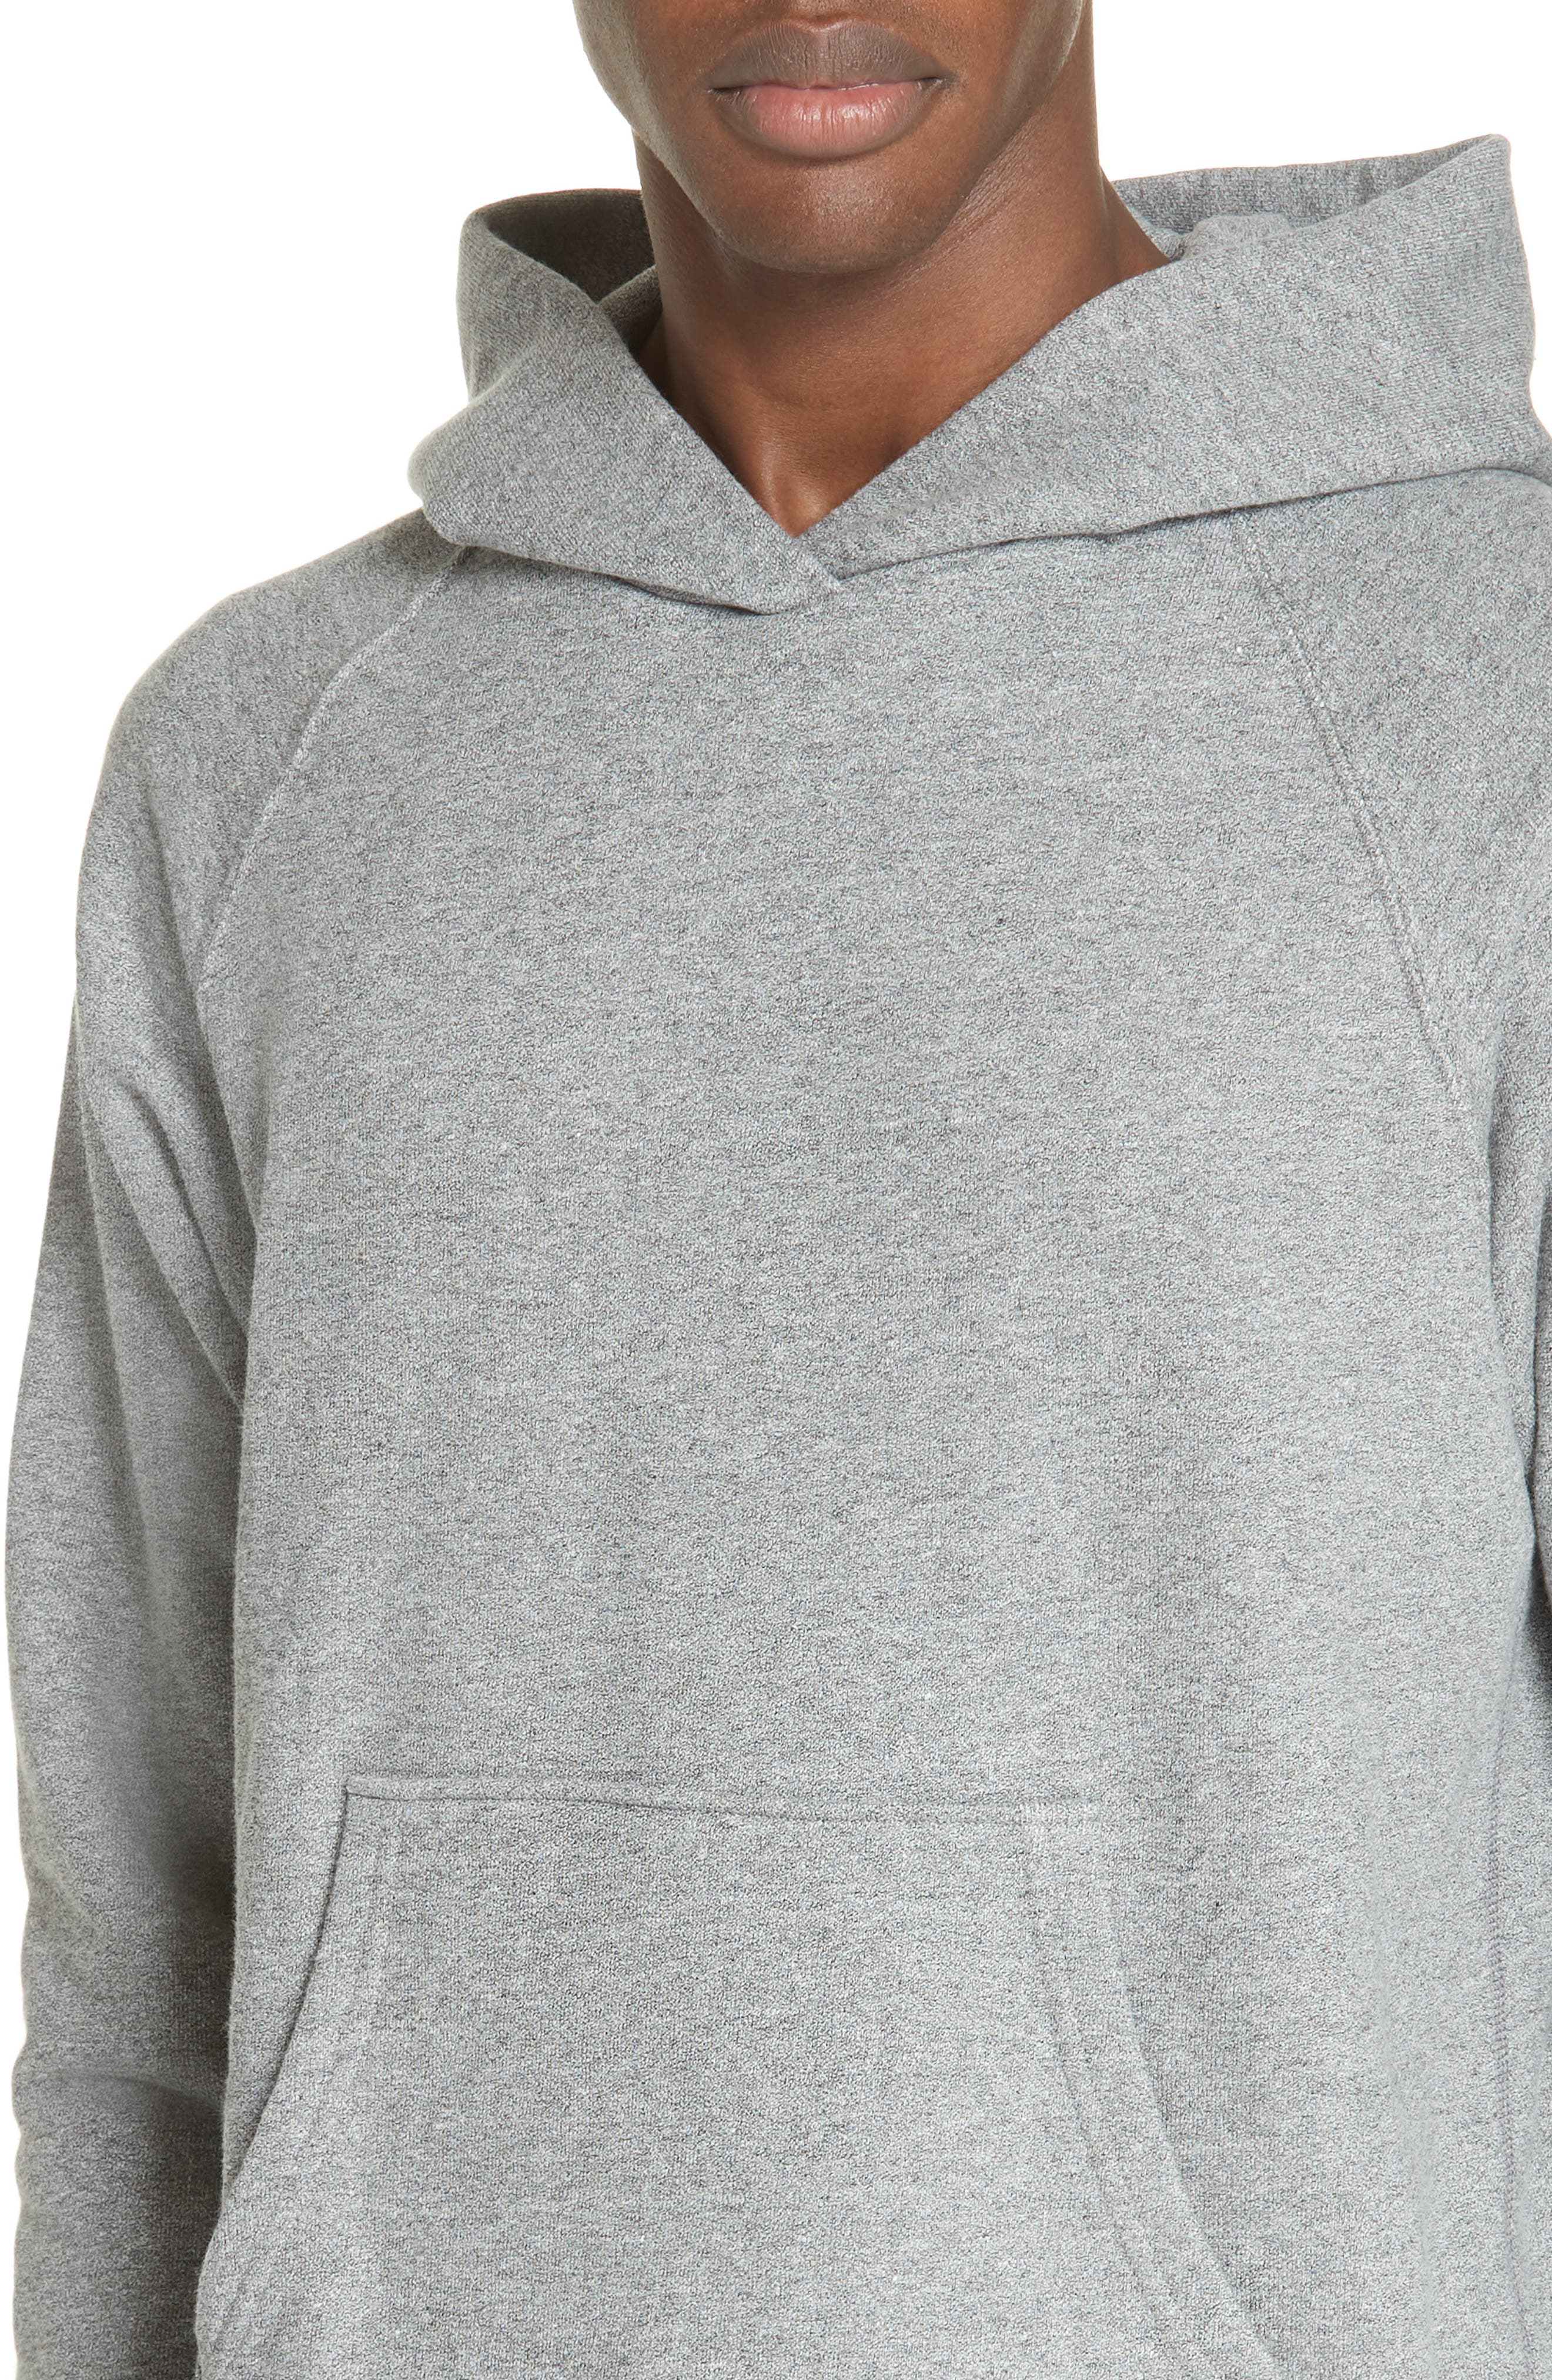 Raglan Hooded Sweatshirt,                             Alternate thumbnail 4, color,                             DARK GREY